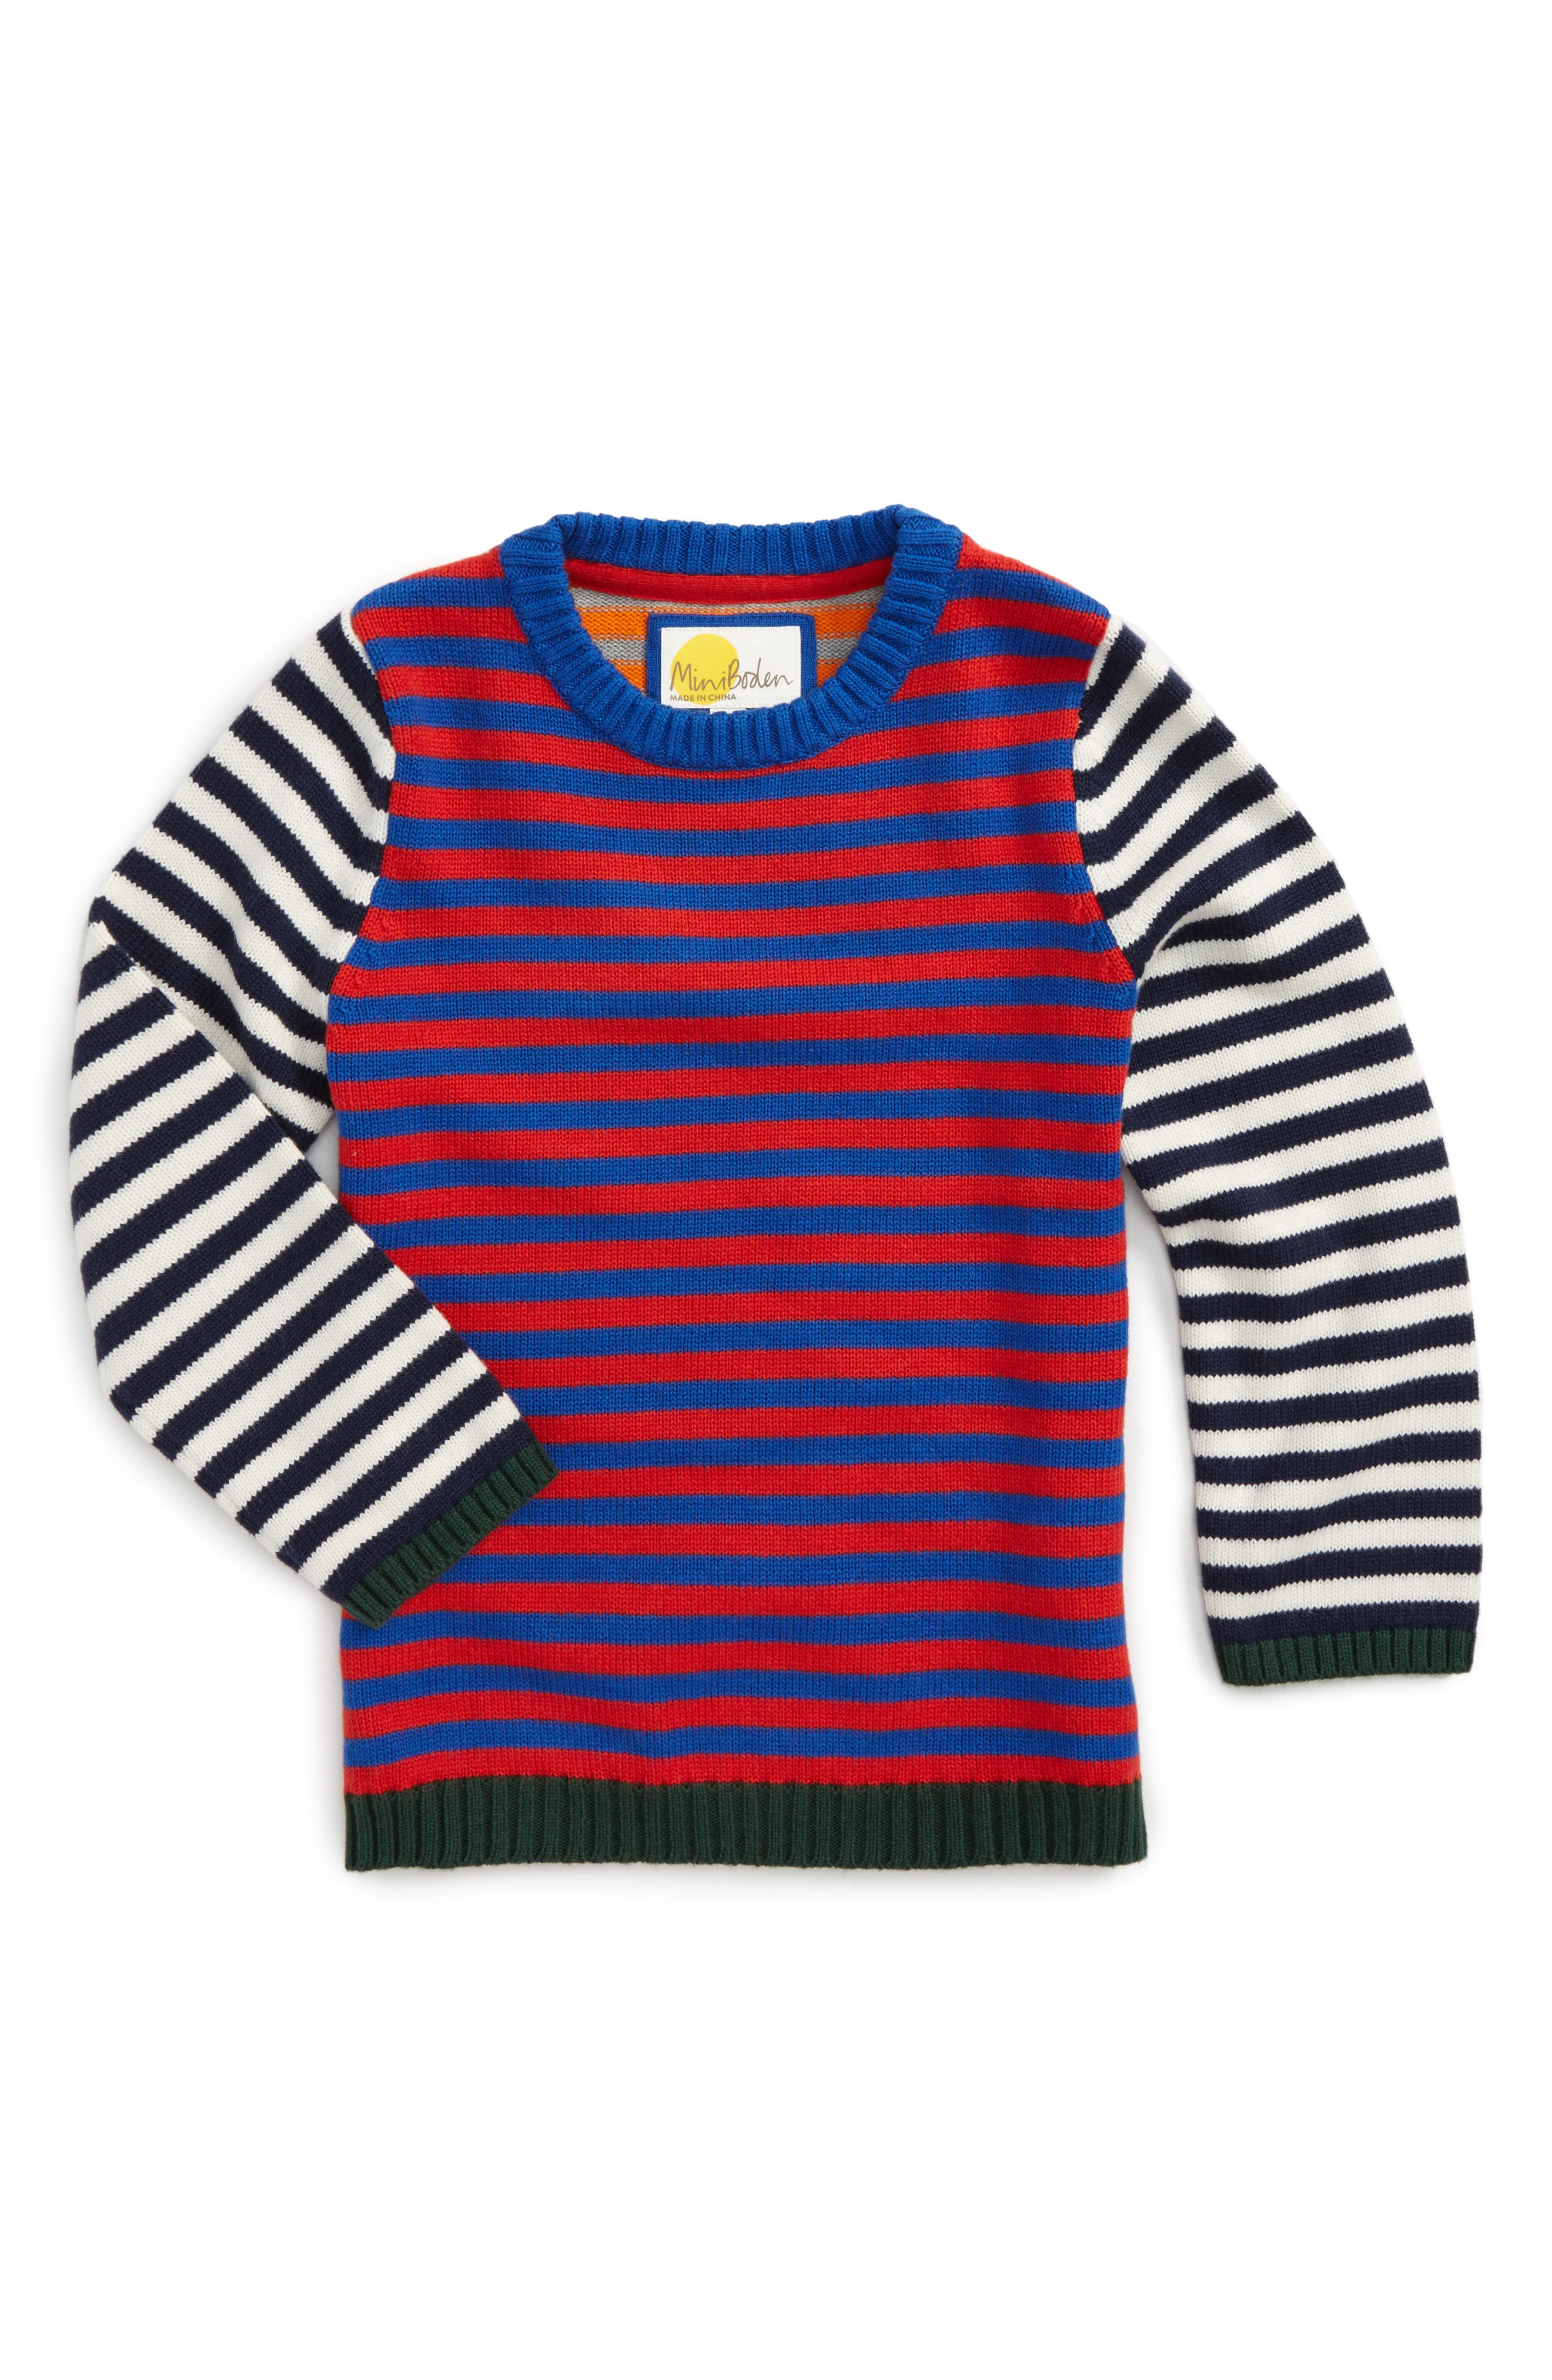 Mini Boden Hotchpotch Sweater (Toddler Boys, Little Boys & Big Boys)